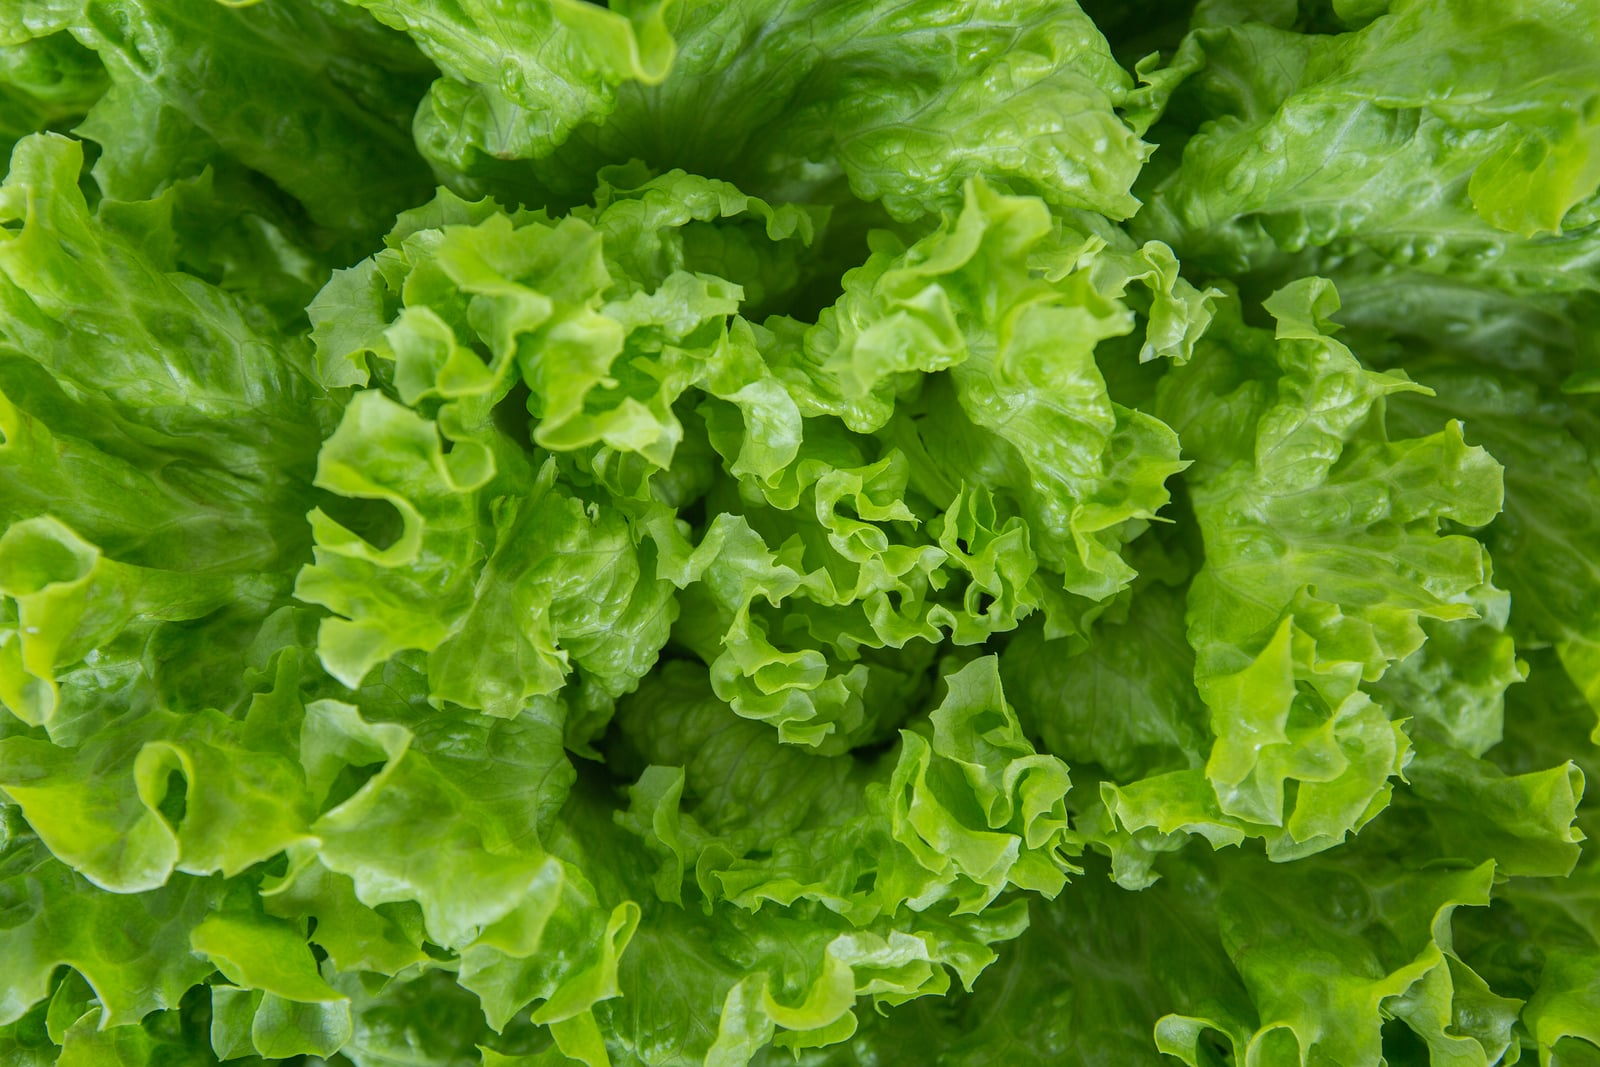 Close up bunch of fresh, green batavia lettuce